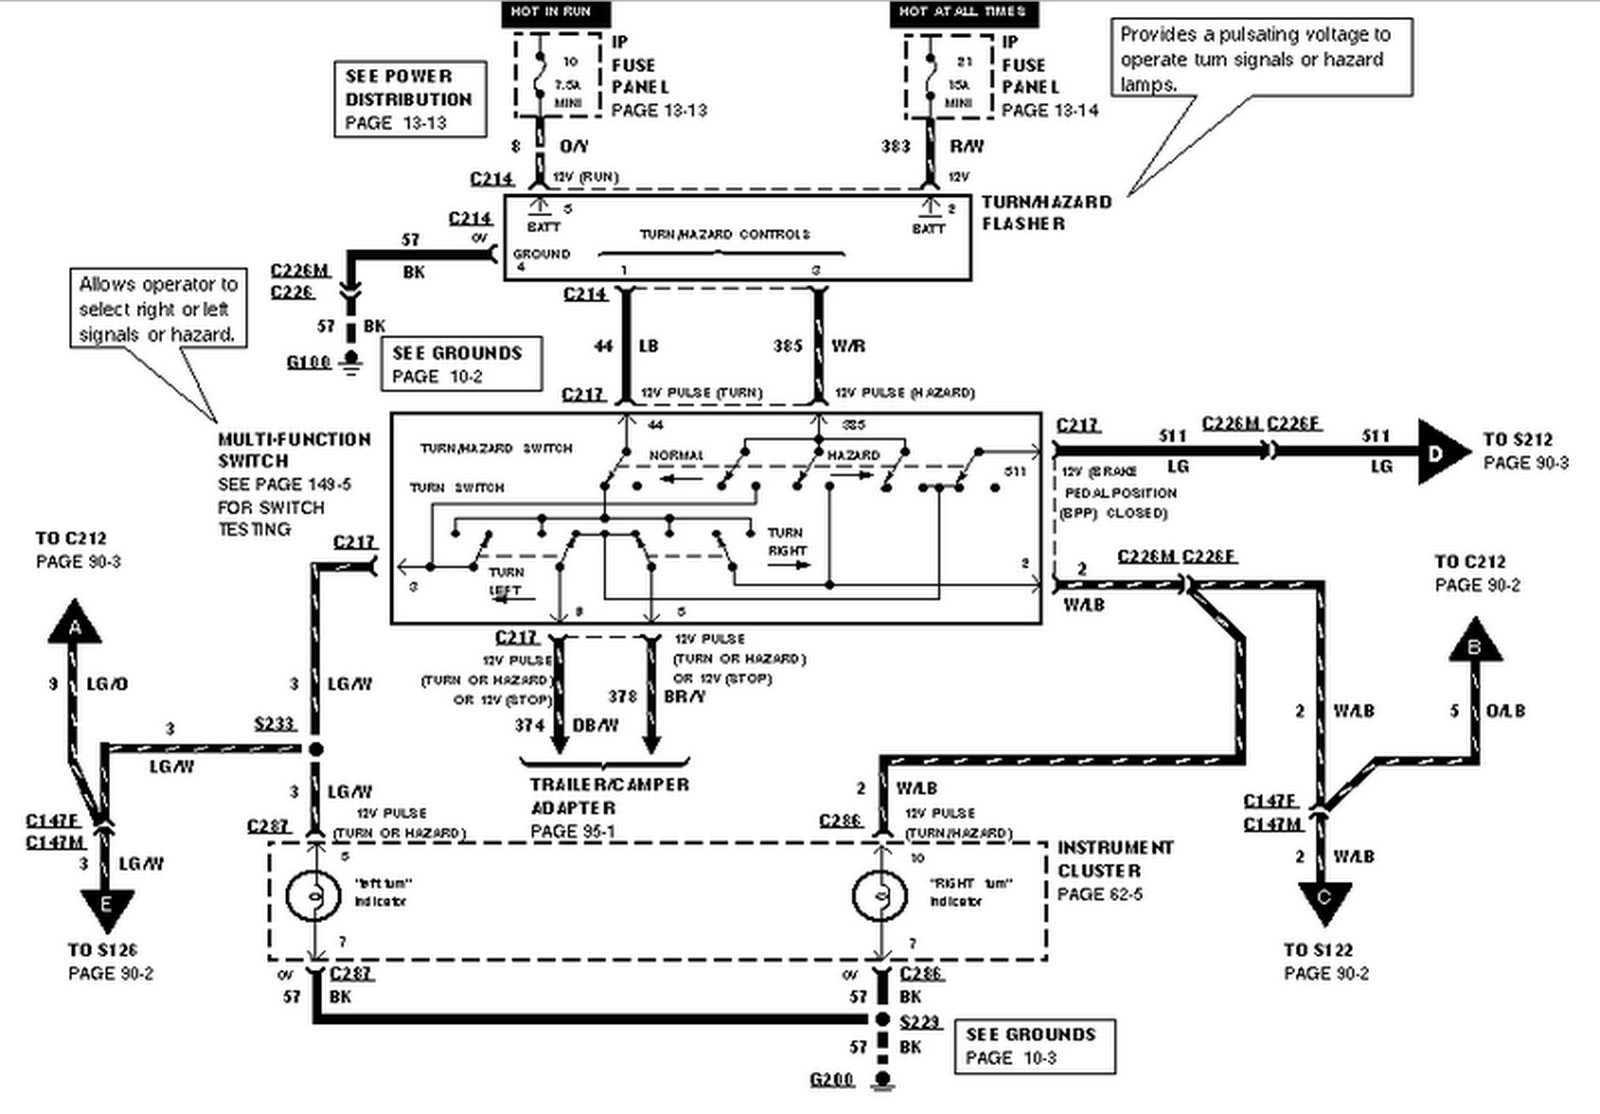 Ford Explorer Wiring Diagram Wiring Diagram System Bare Locate A Bare Locate A Ediliadesign It